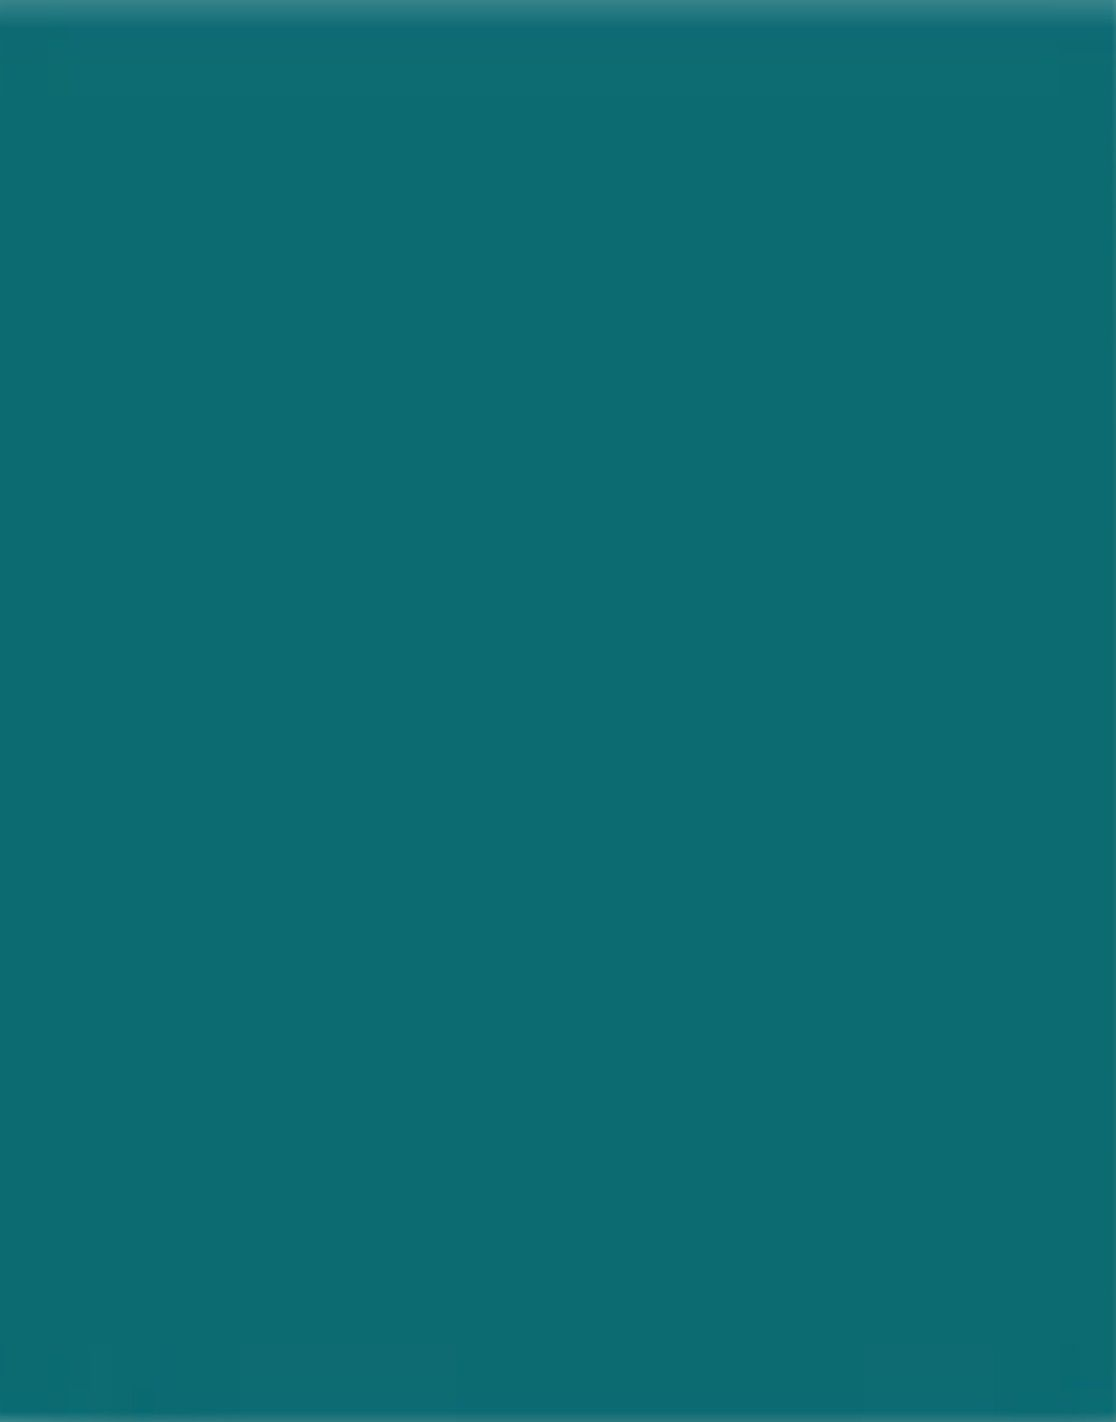 Dark Blue Green Google Search Small Space Pinterest